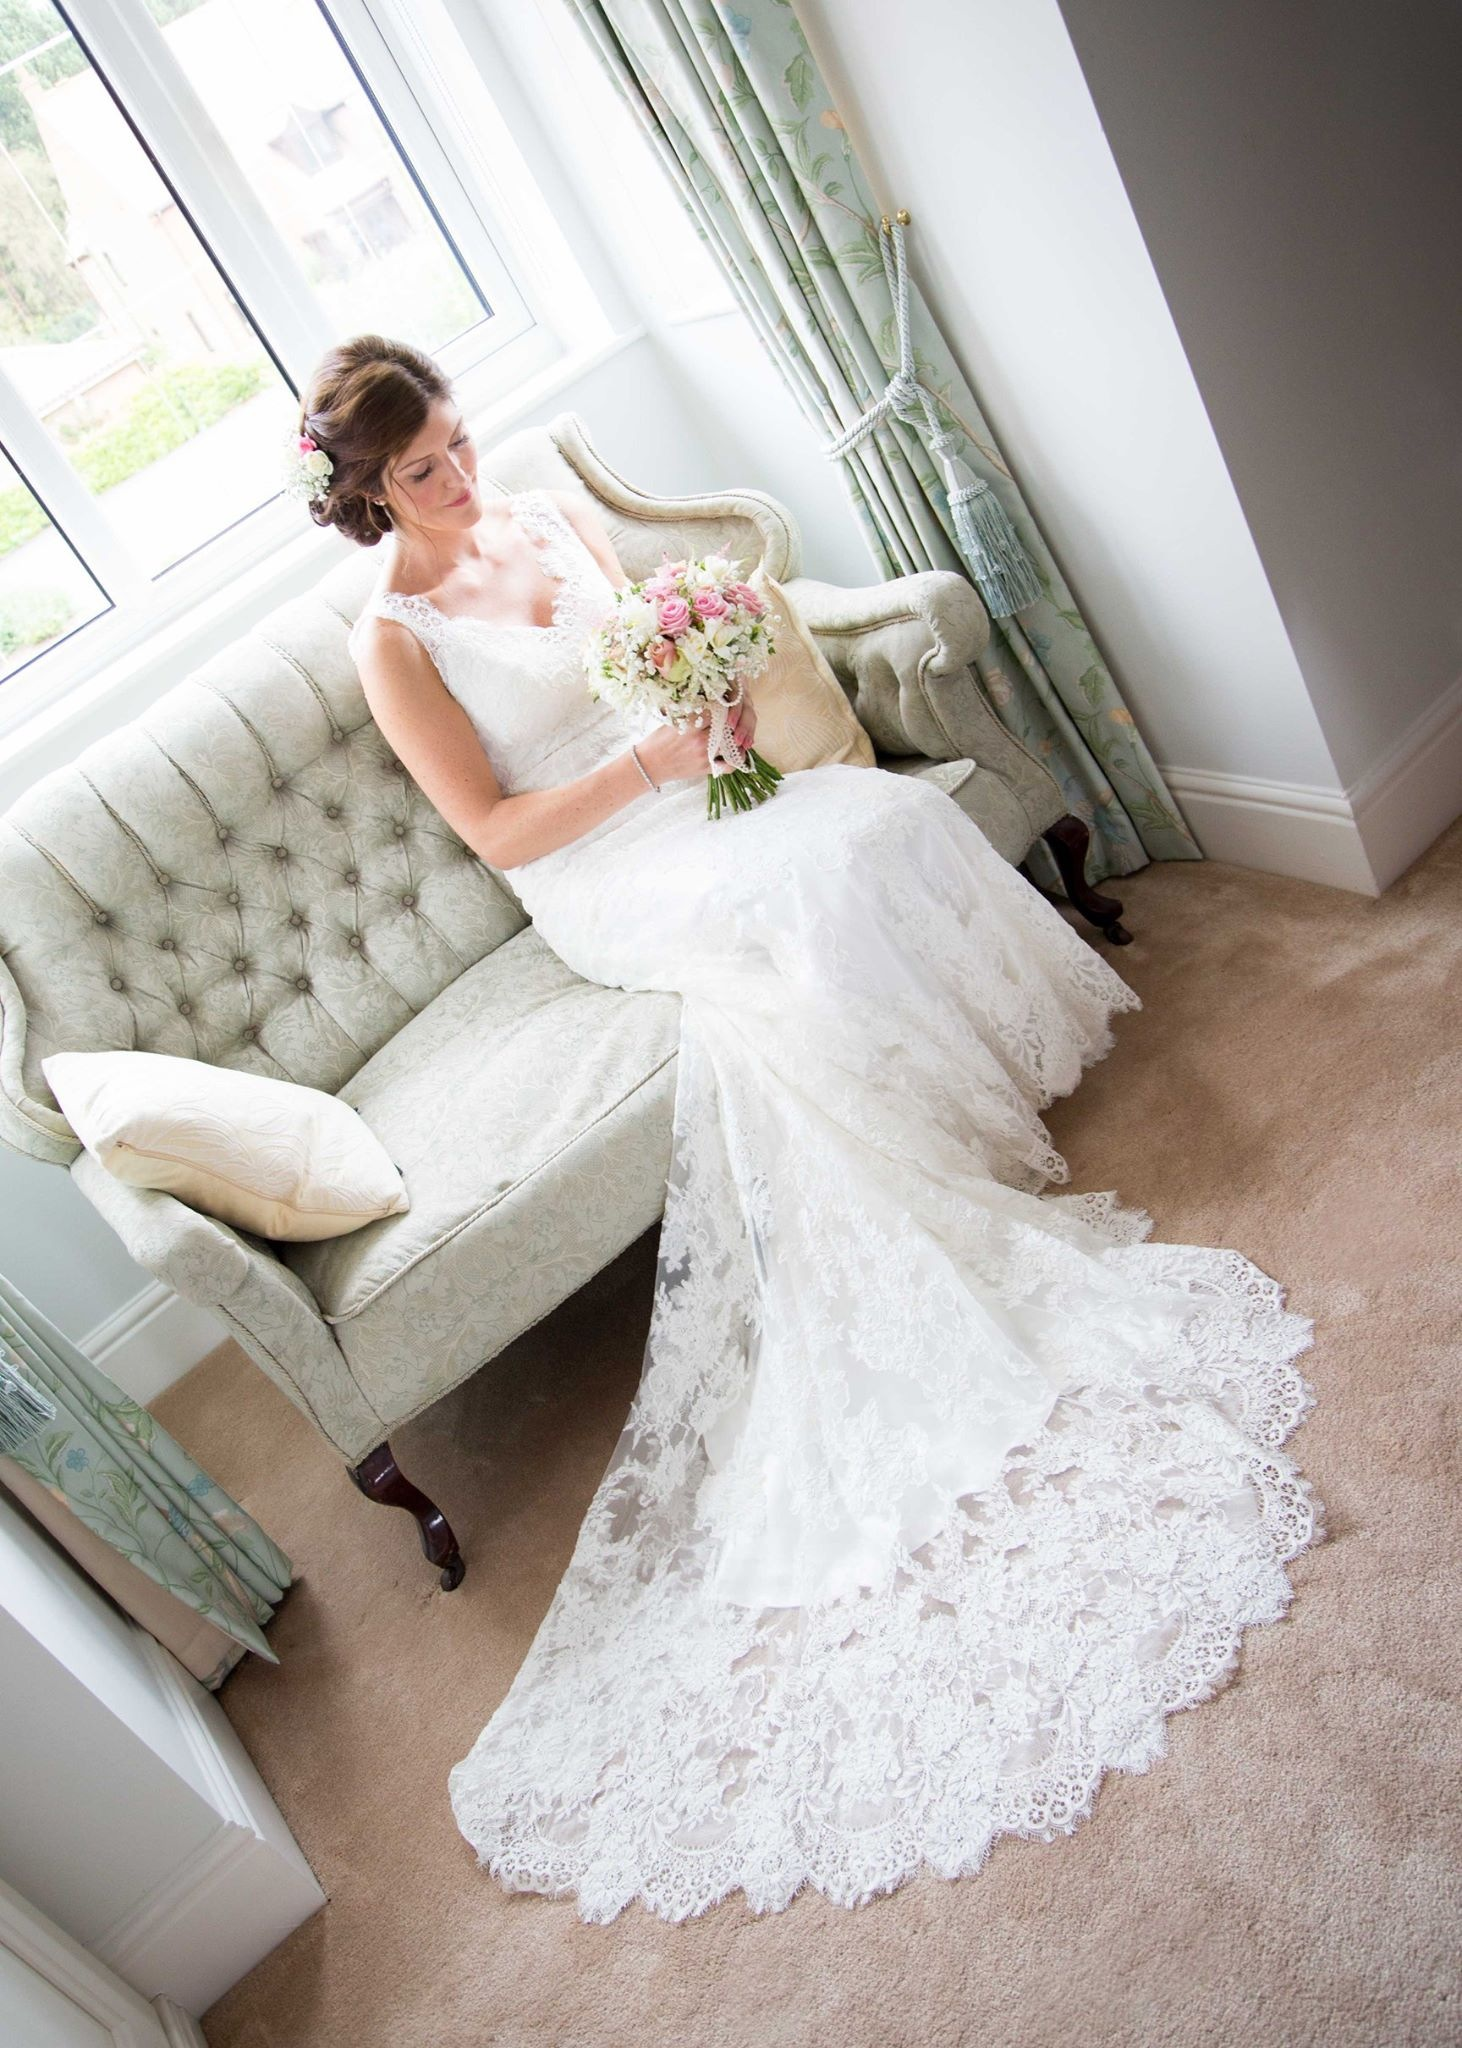 Bride with bouquet sat in window